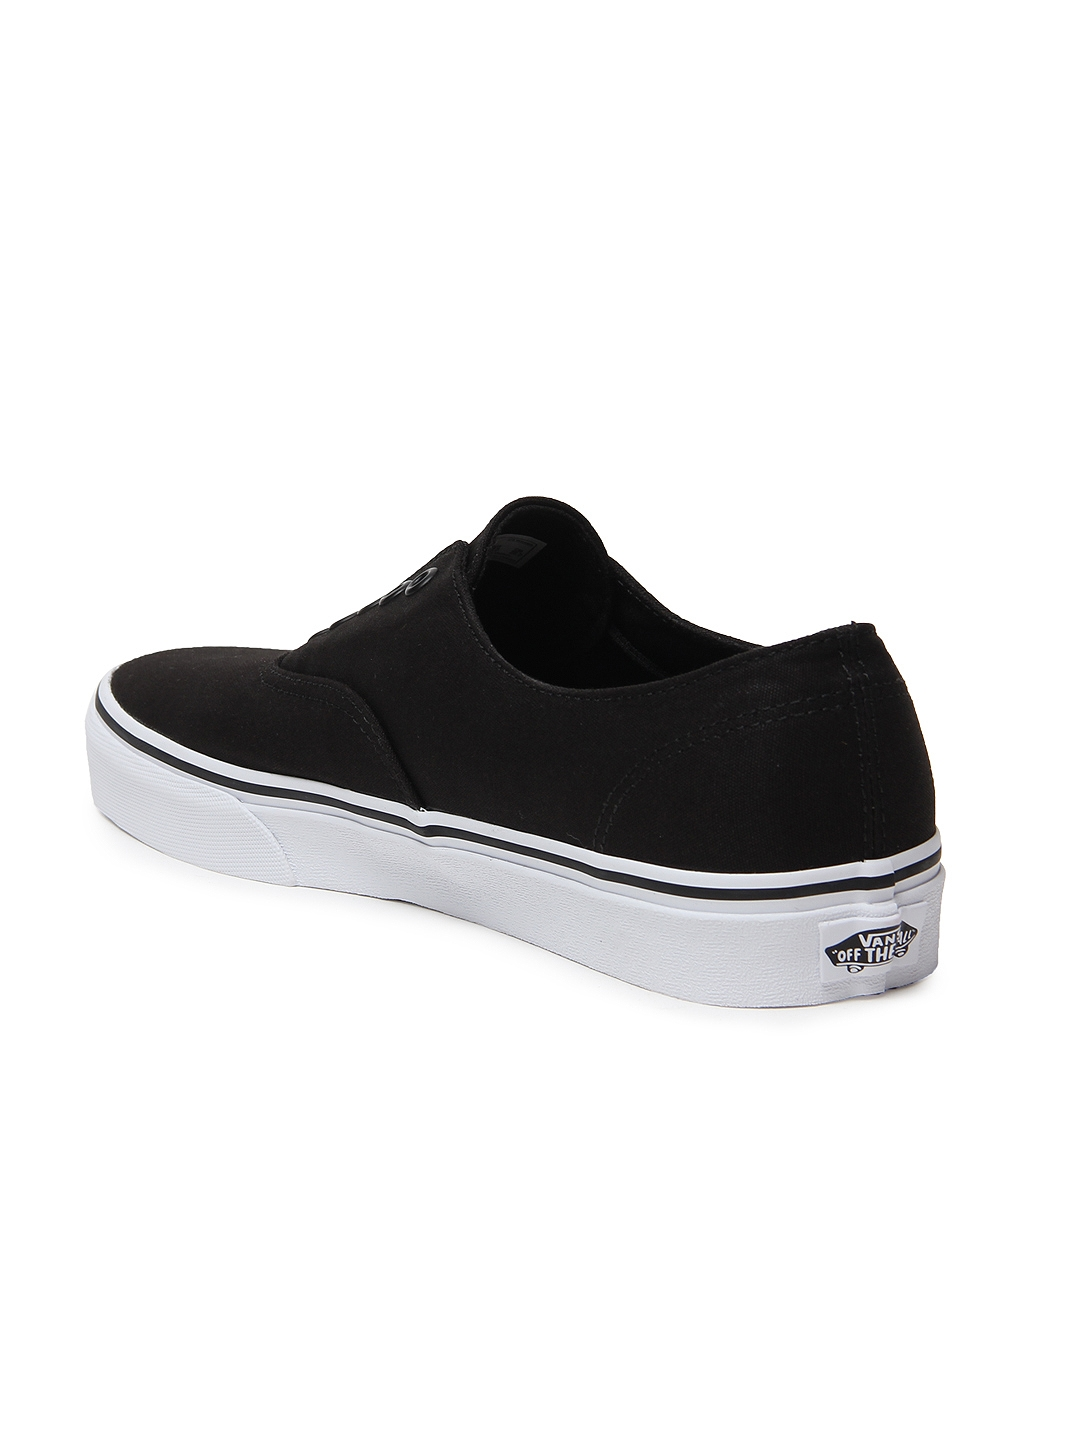 6ee00be7e4 Buy Vans Unisex Black Authentic Gore Slip On Sneakers - Casual Shoes ...